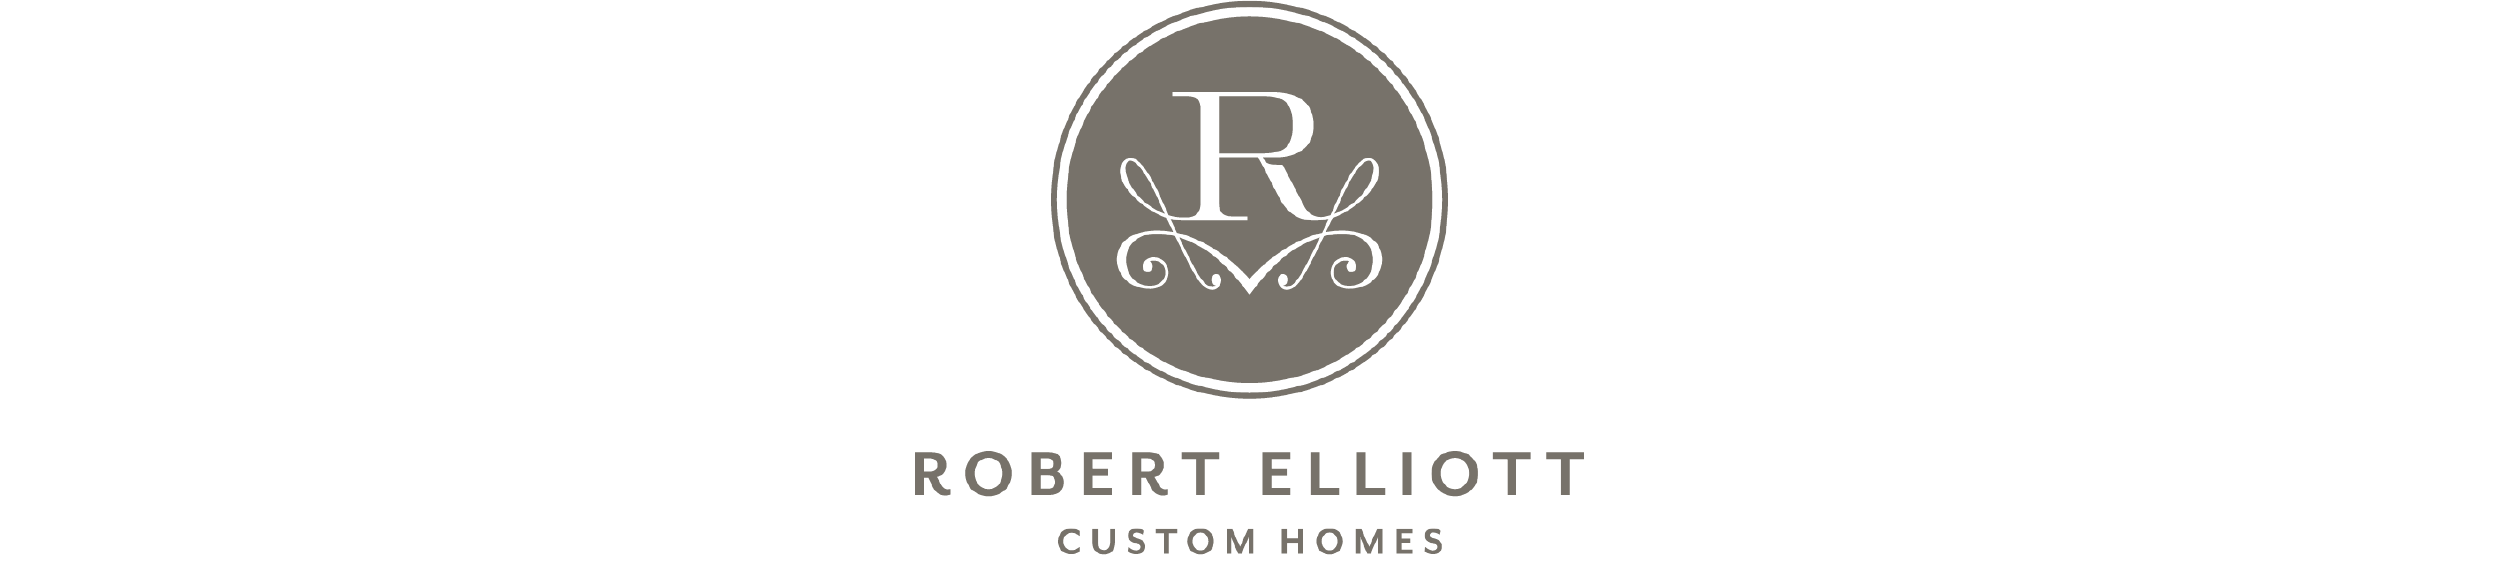 Robert Elliott Custom Homes